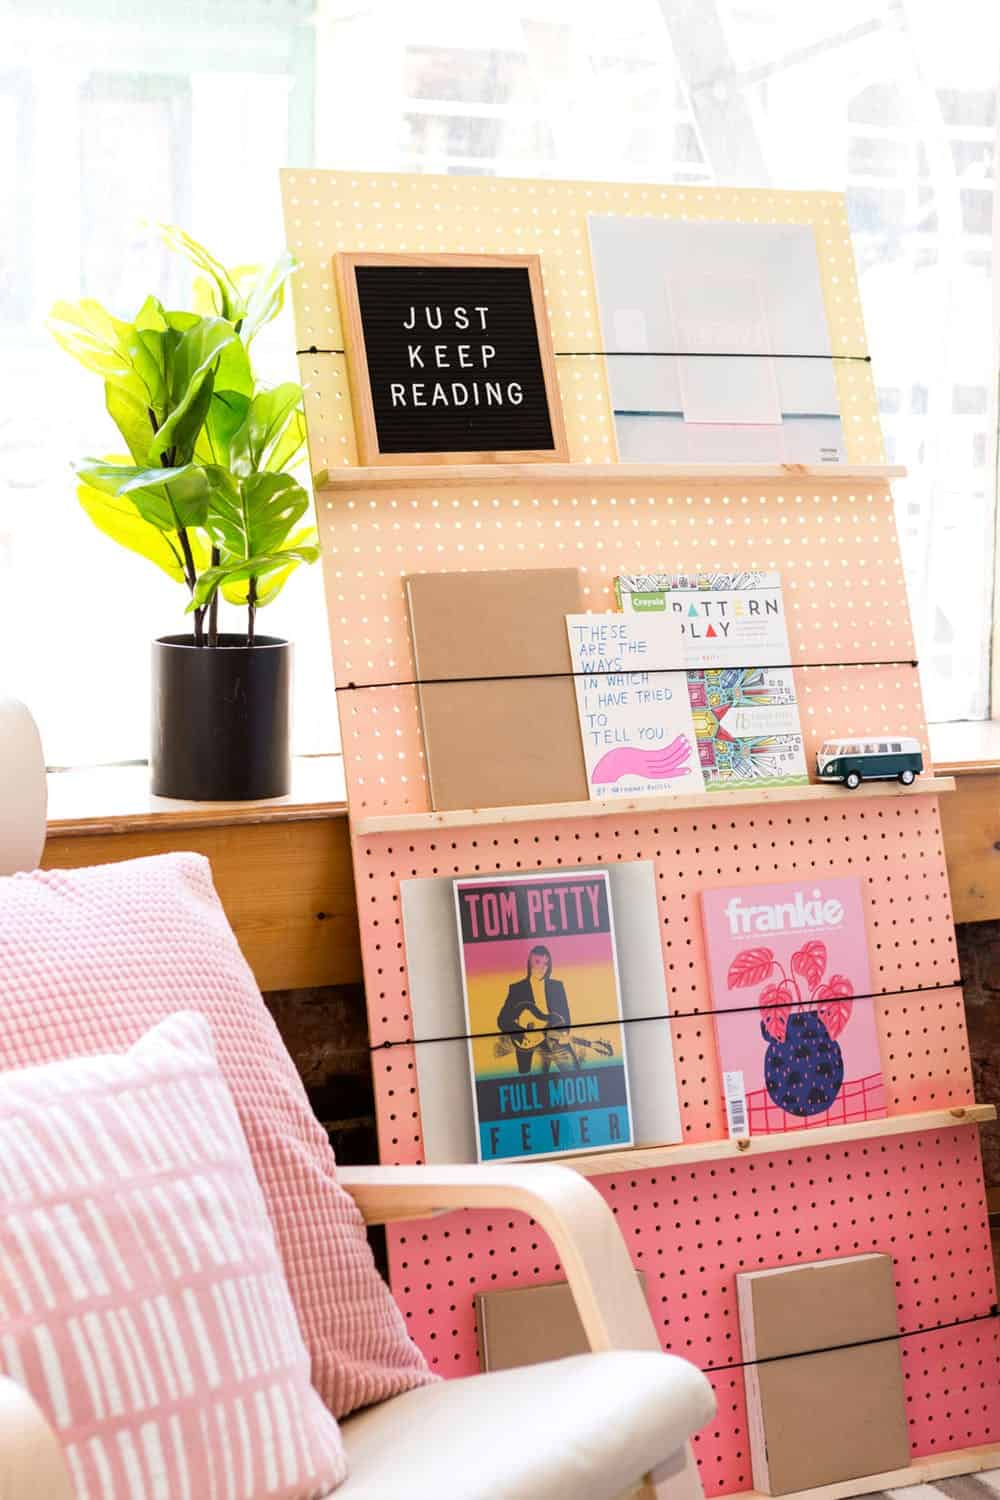 15 DIY Bookshelves To Organize & Display Your Fav Stories